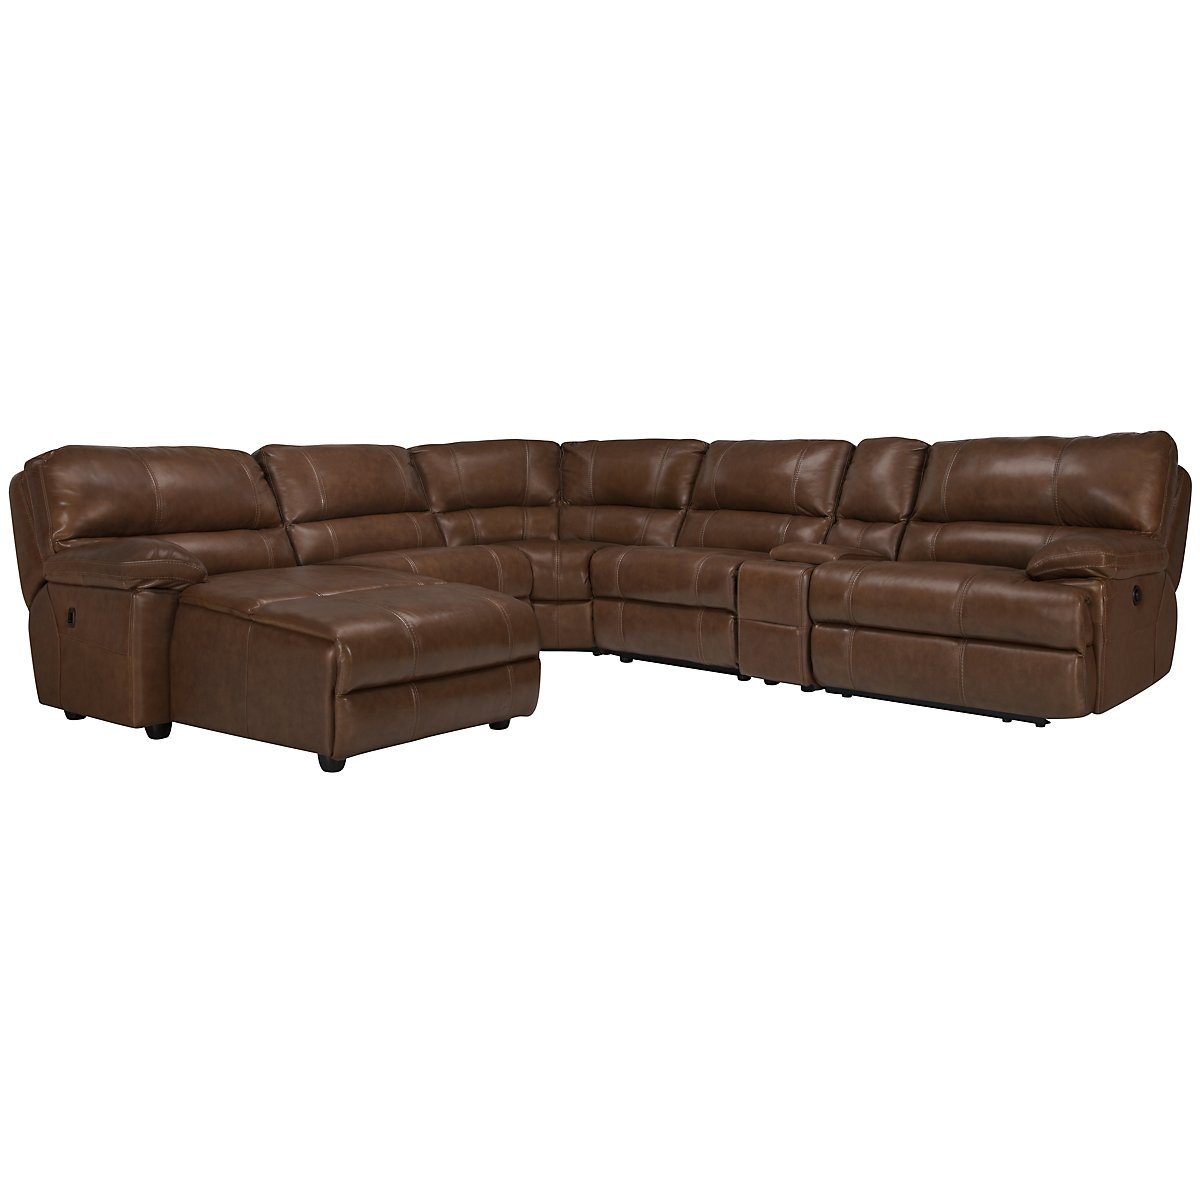 Alton2 Md Brown Leather & Vinyl Left Chaise Power Reclining Sectional